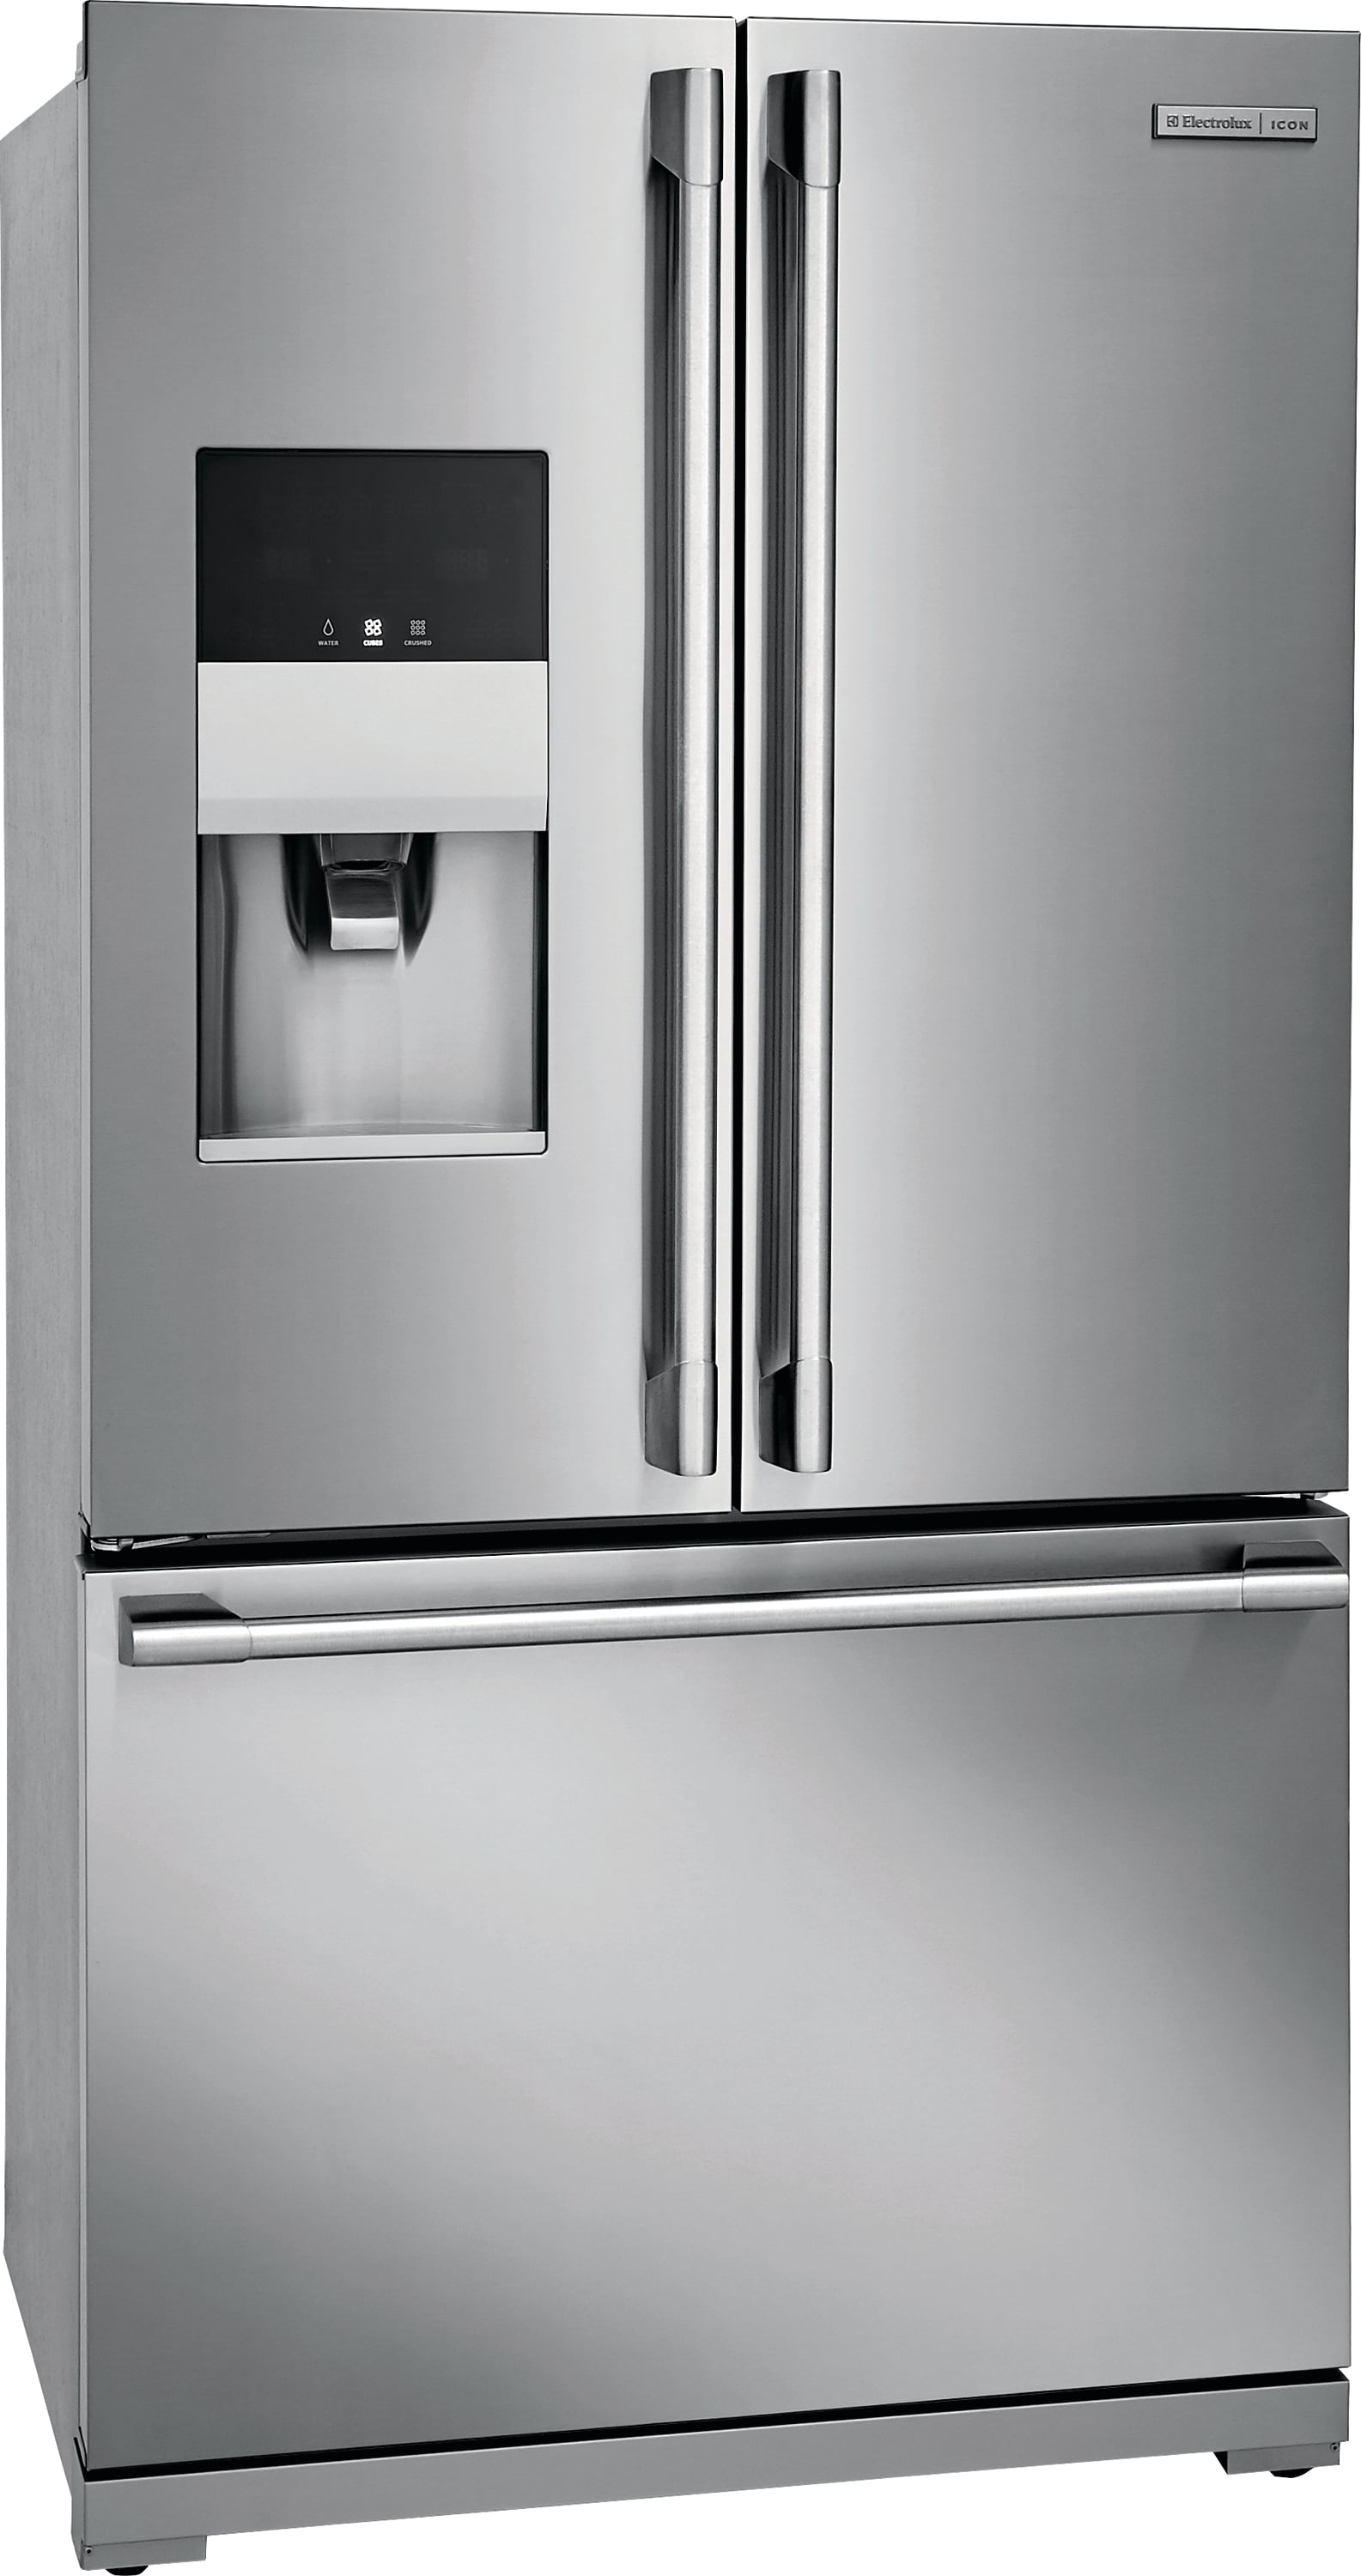 hight resolution of electrolux icon french door refrigerator